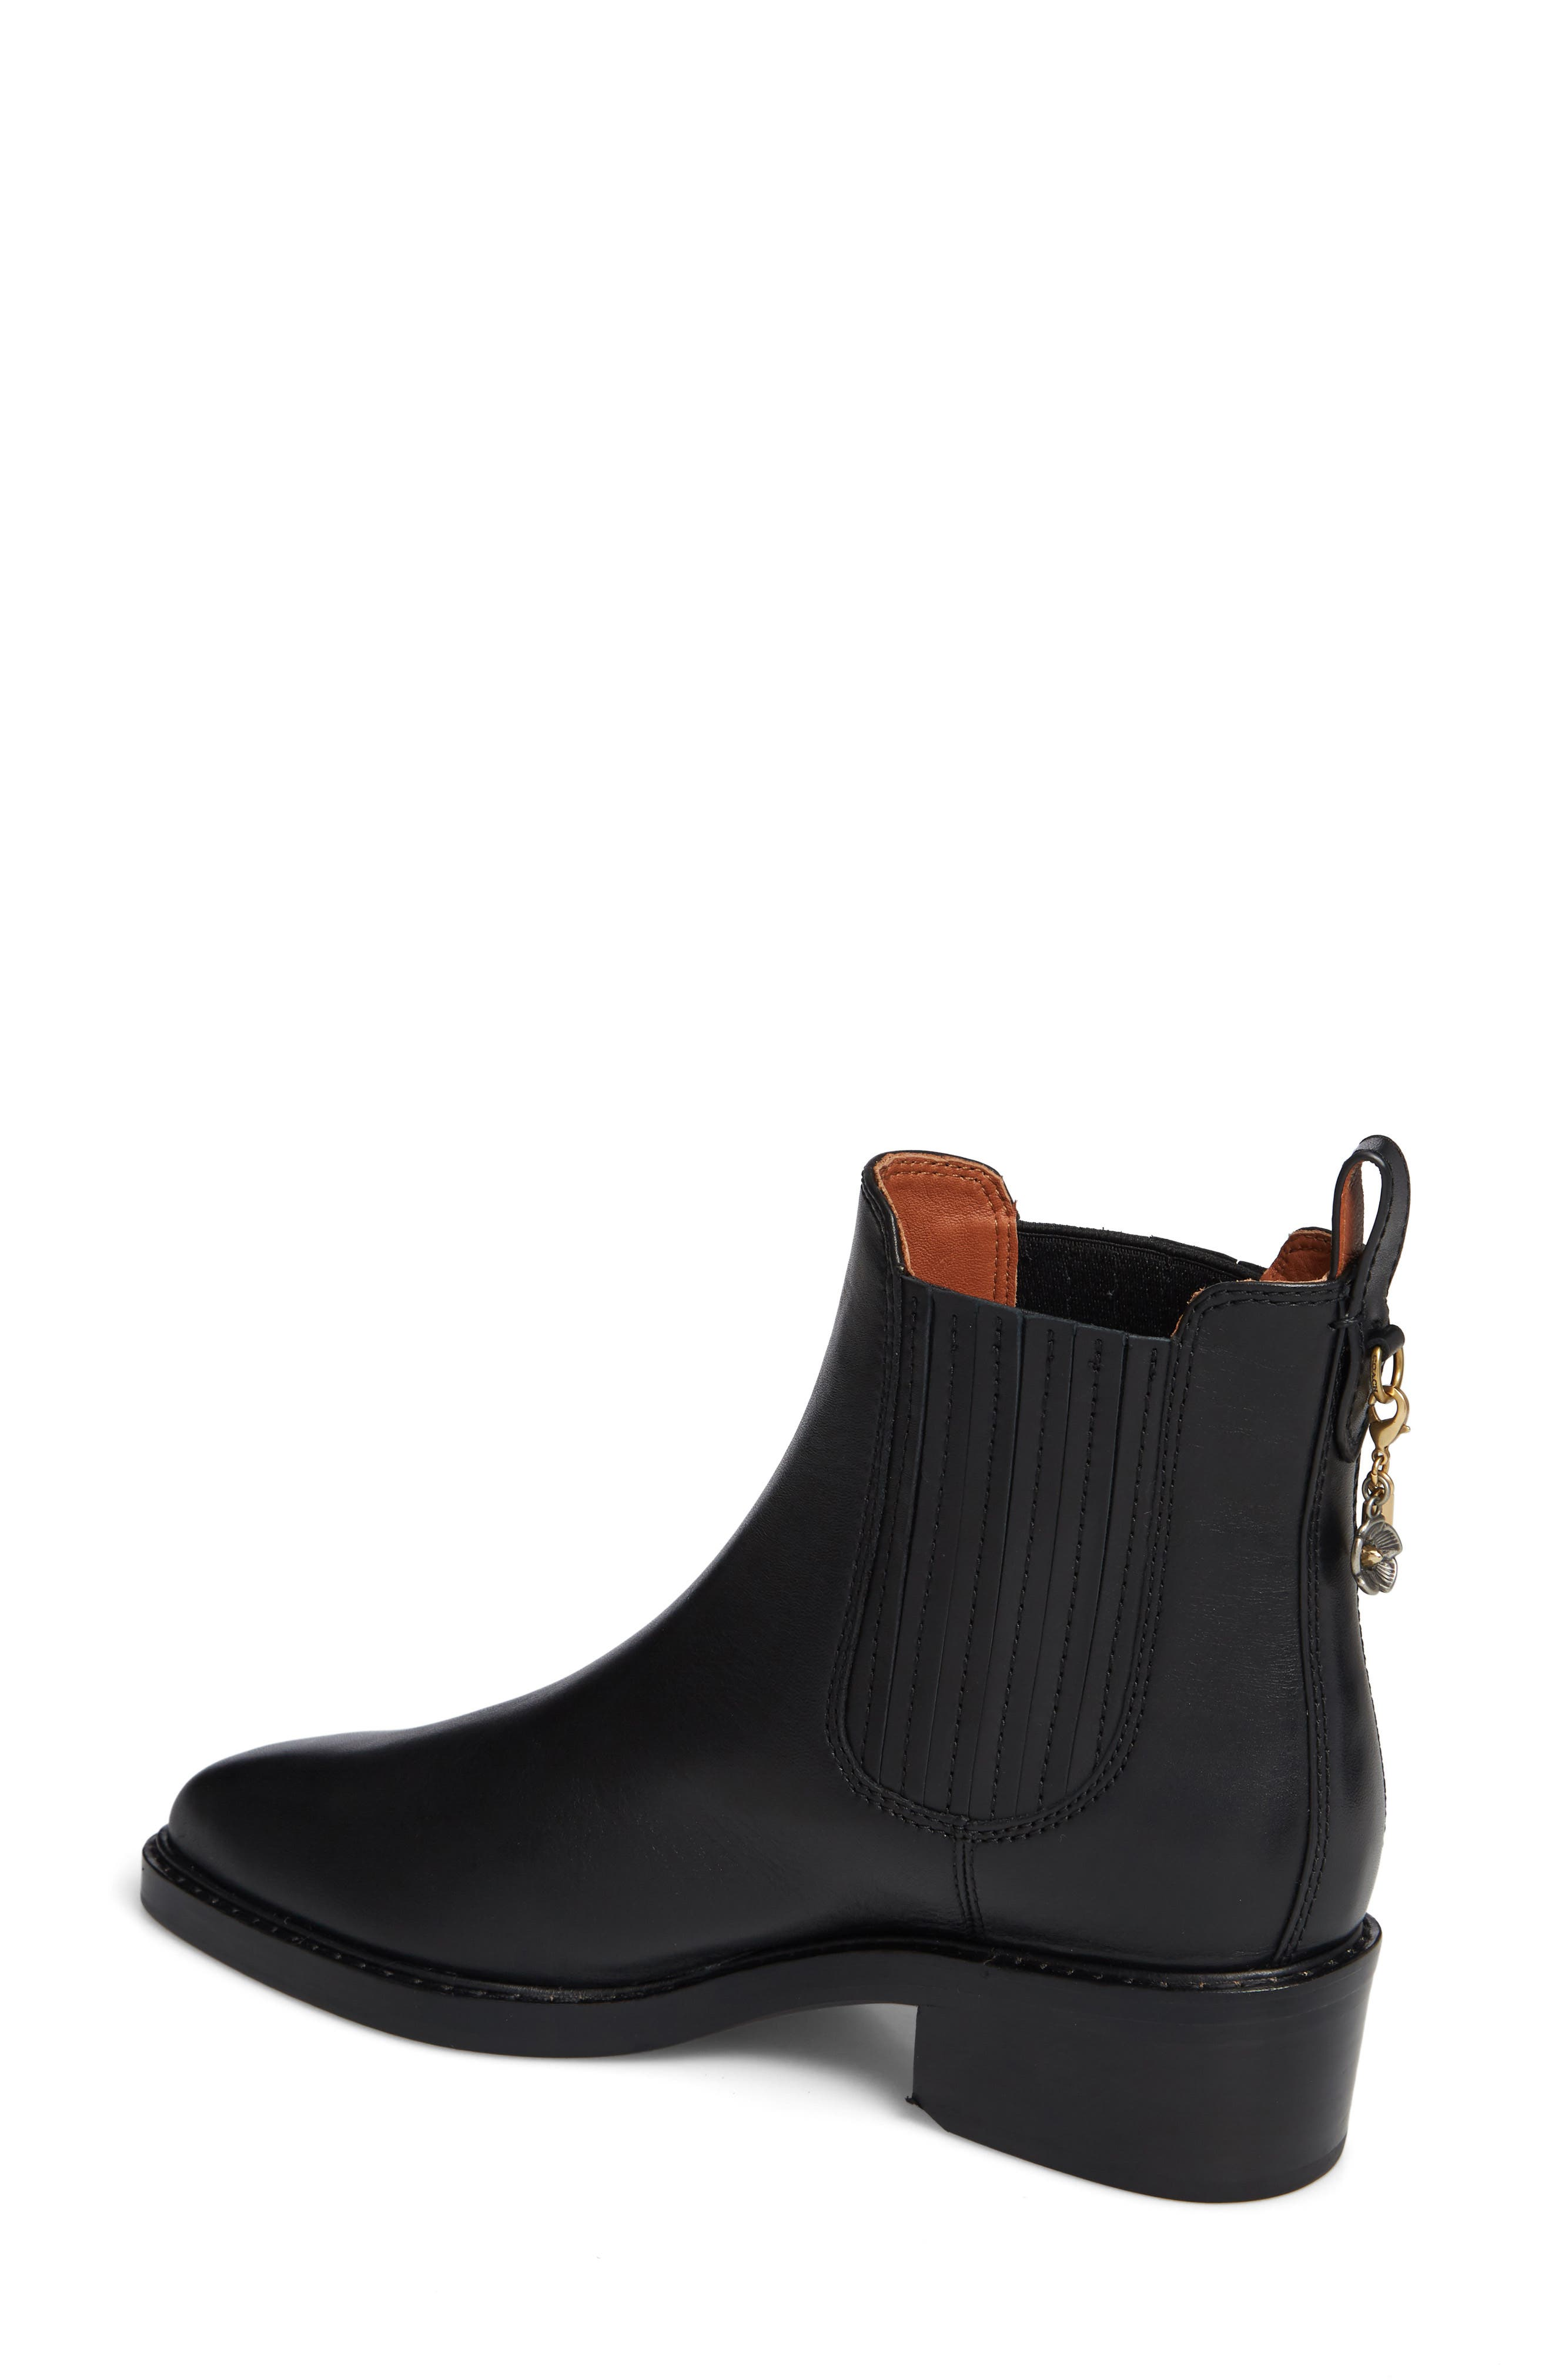 Bowery Chelsea Bootie,                             Alternate thumbnail 2, color,                             BLACK LEATHER